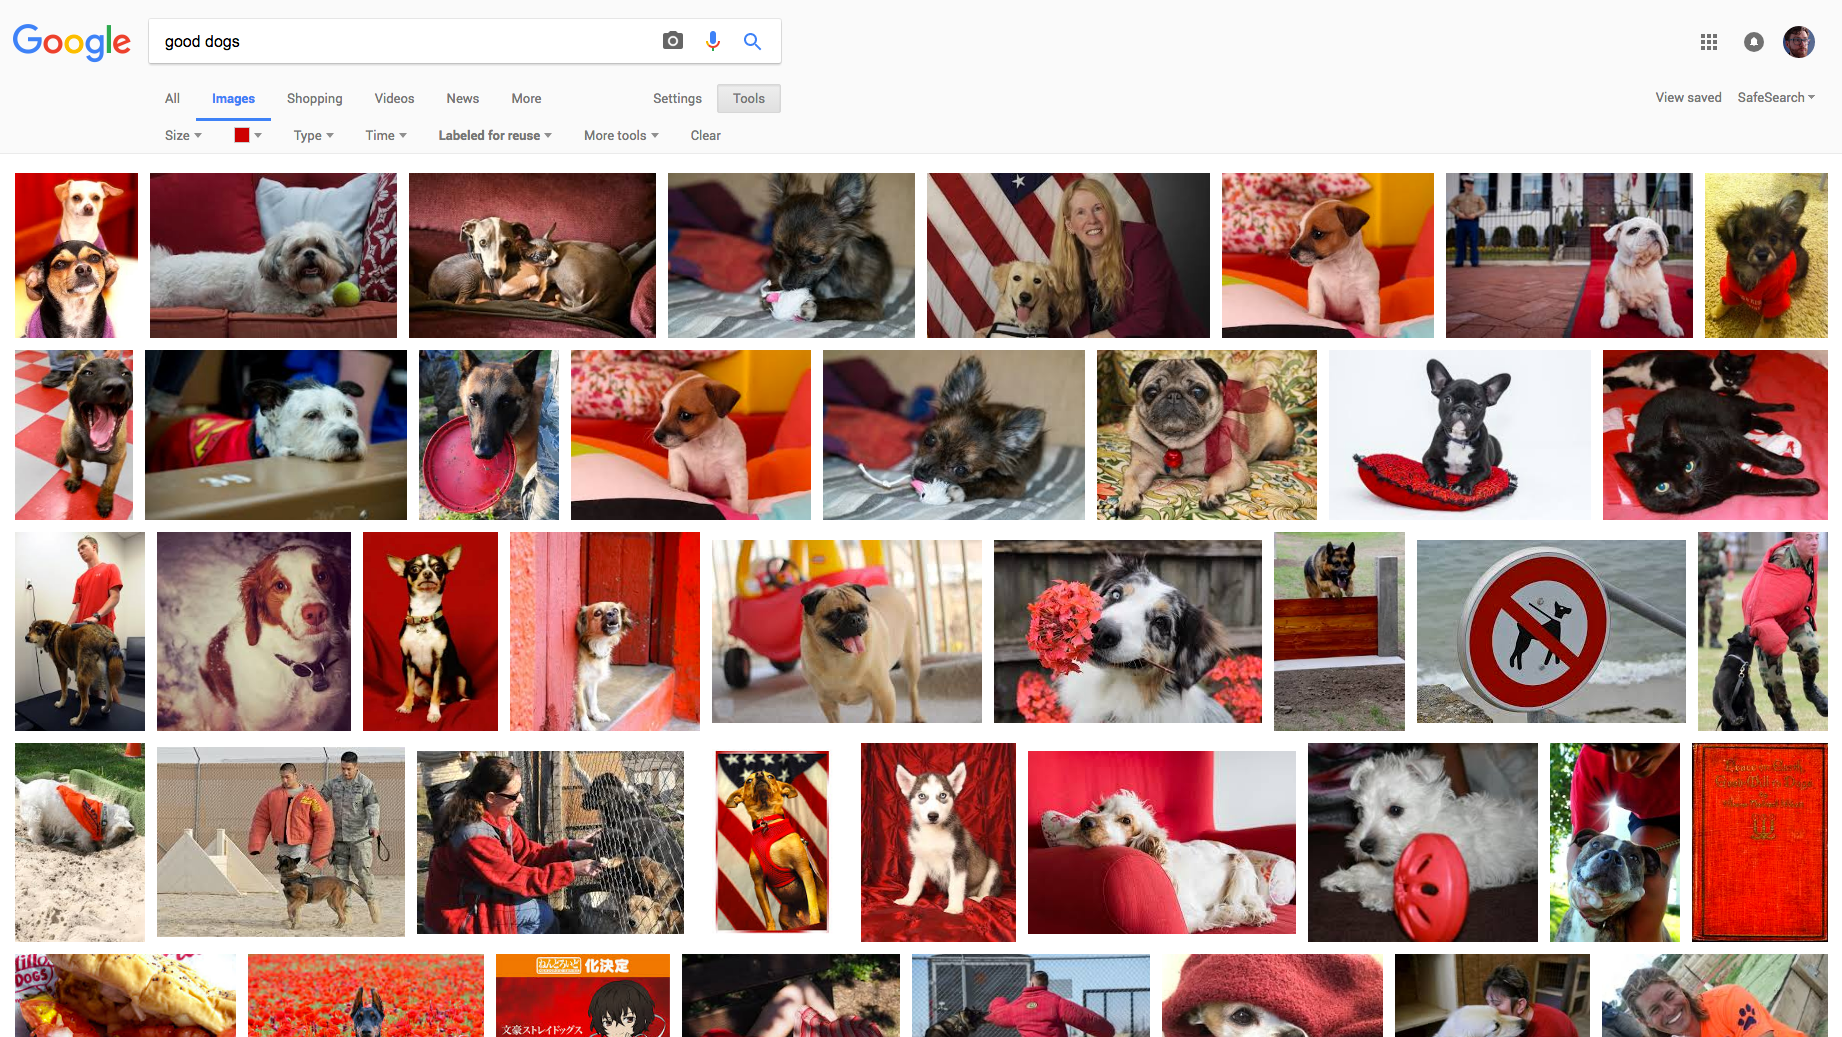 Search Flickr Better With Google Images